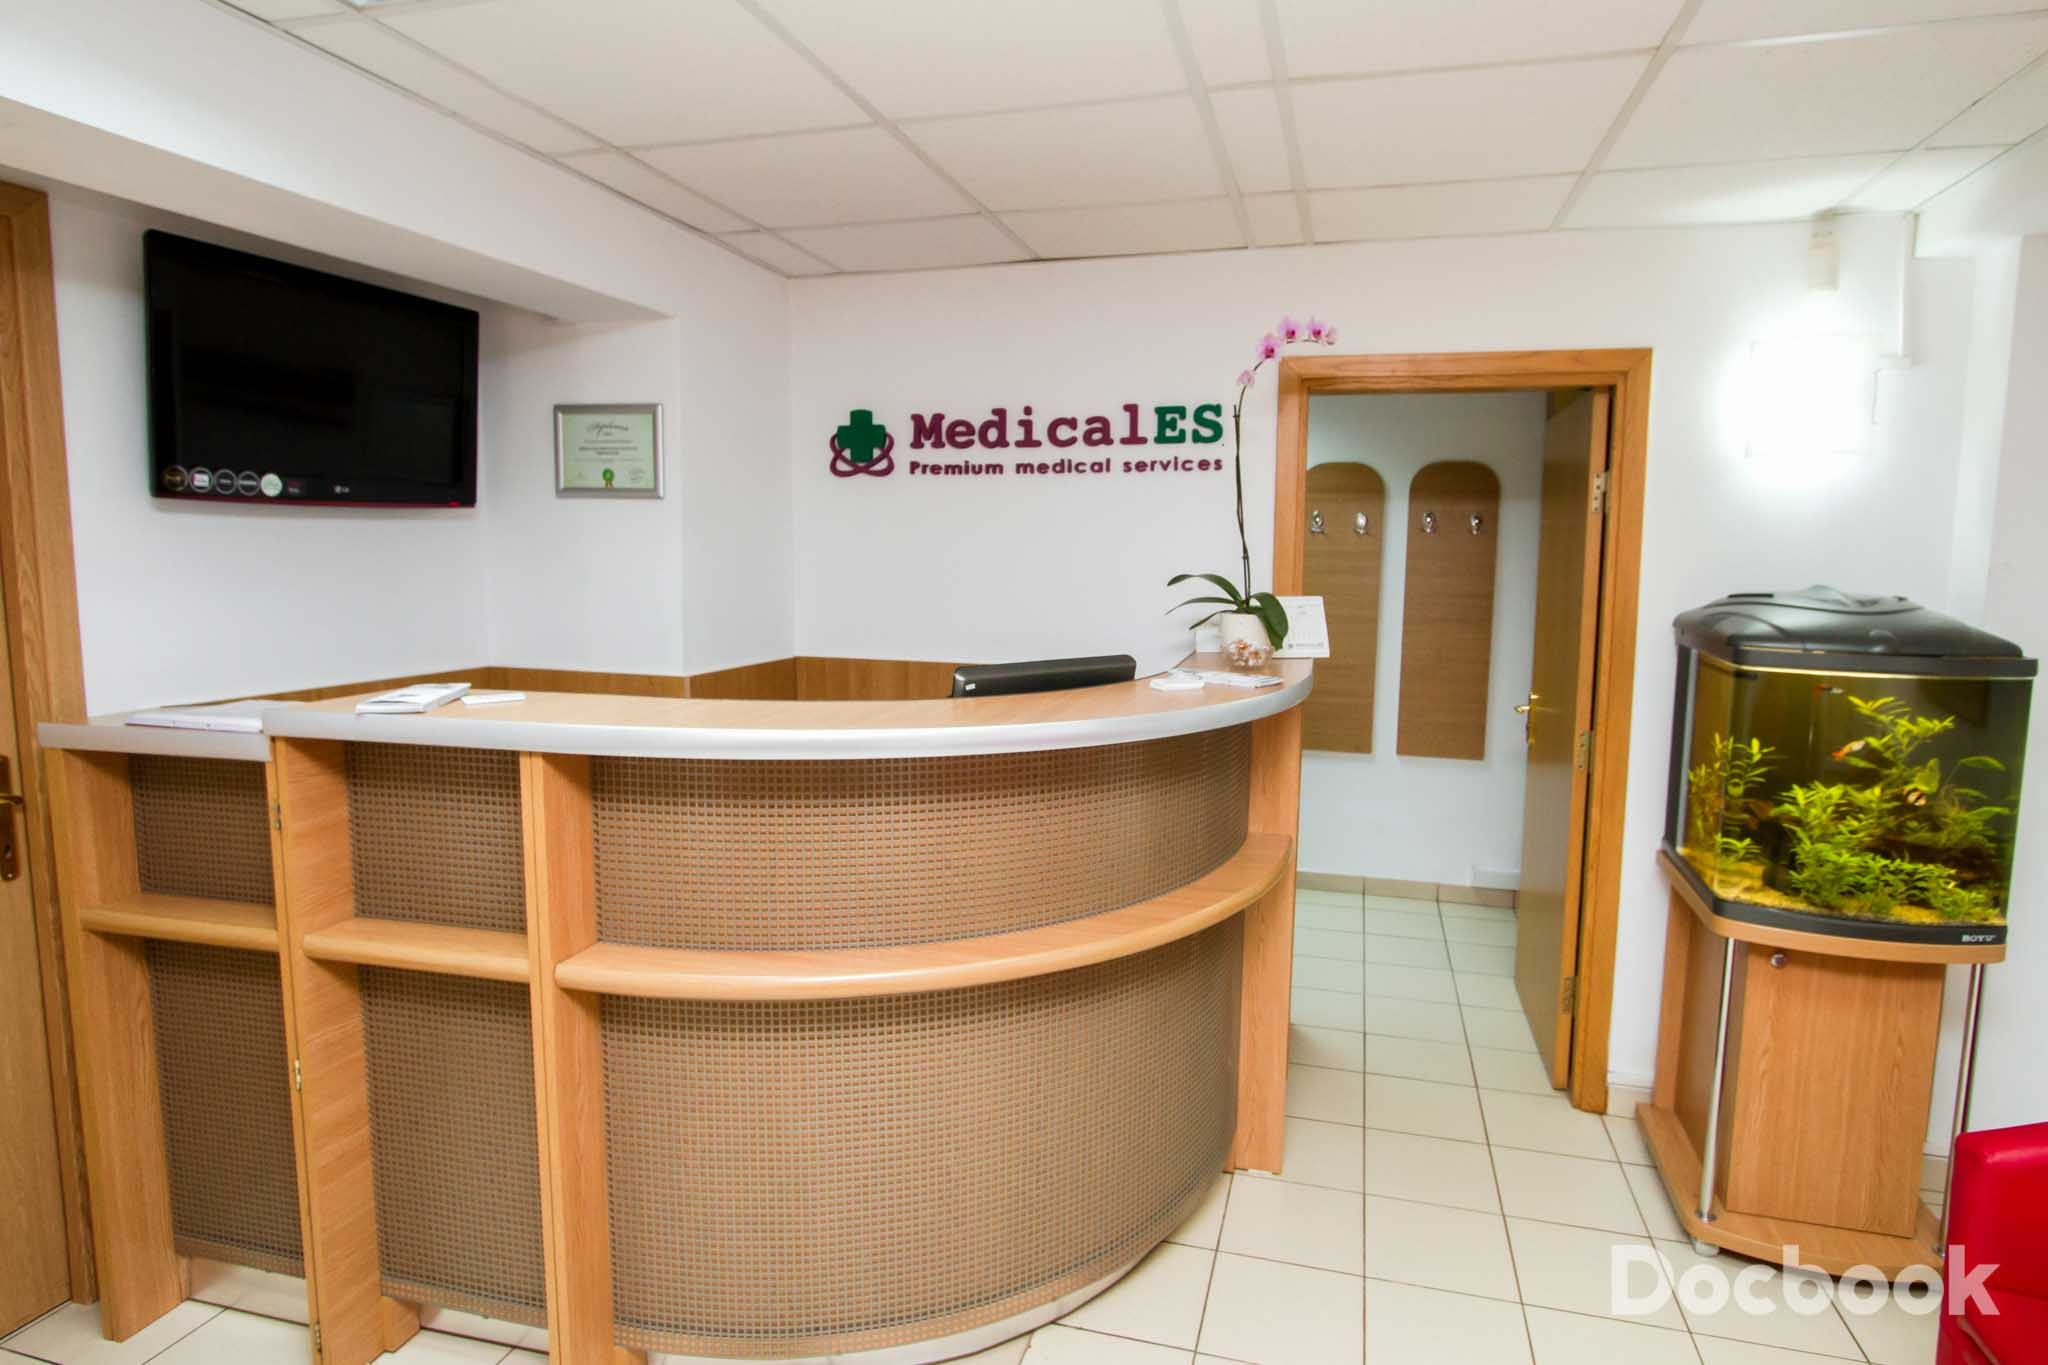 Clinica Medicales 13 Septembrie